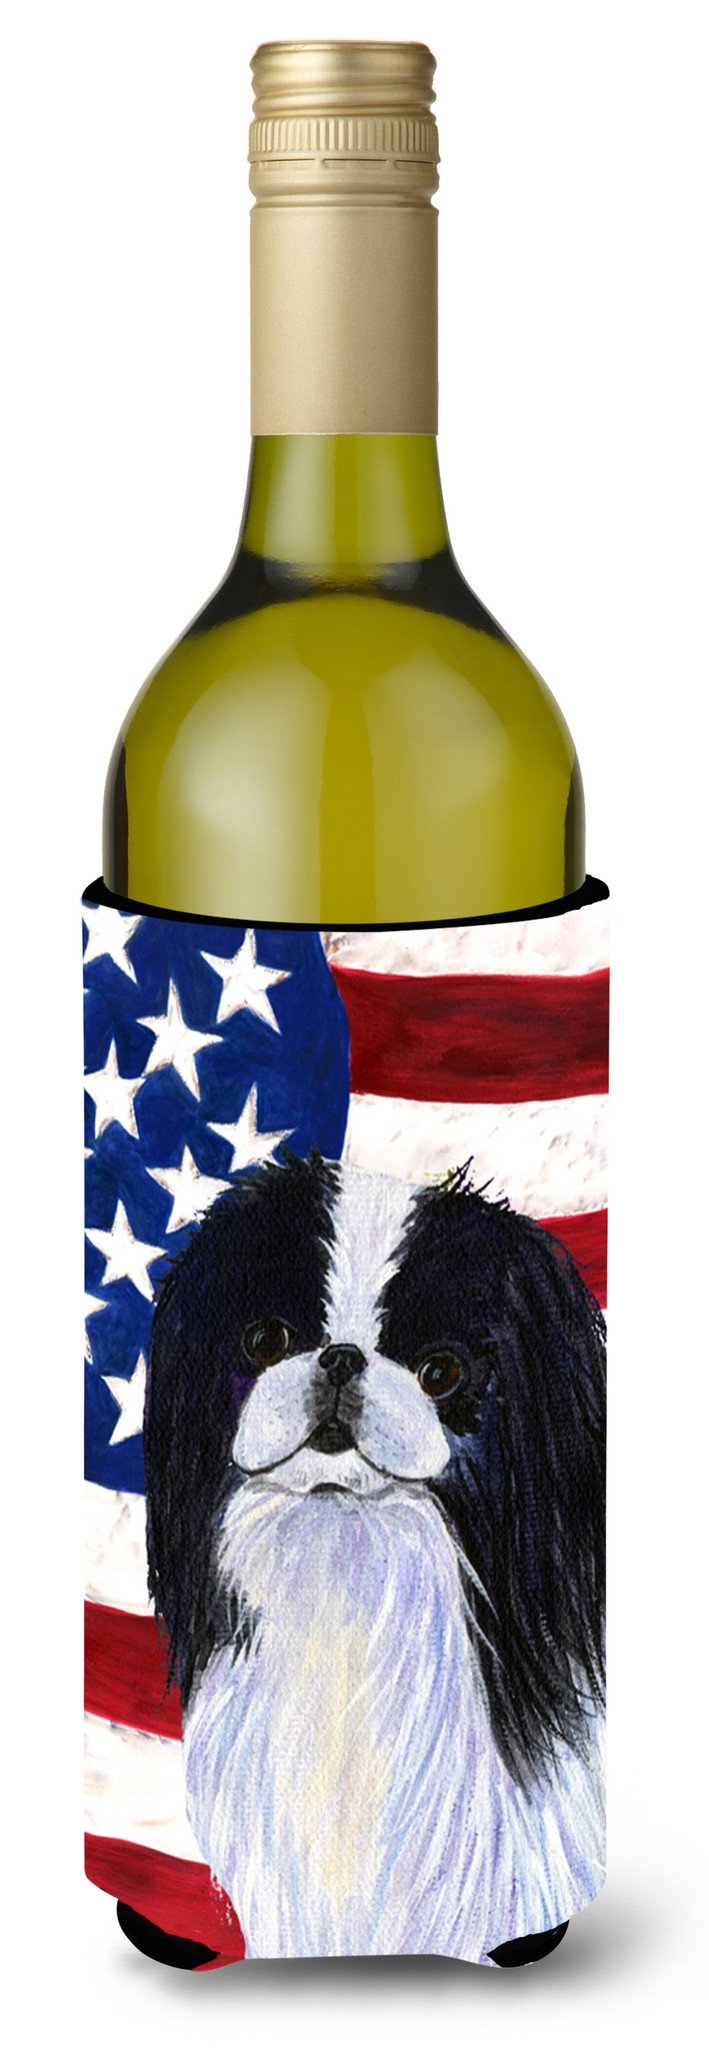 USA American Flag with Japanese Chin Wine Bottle Beverage Insulator Beverage Insulator Hugger by Caroline's Treasures